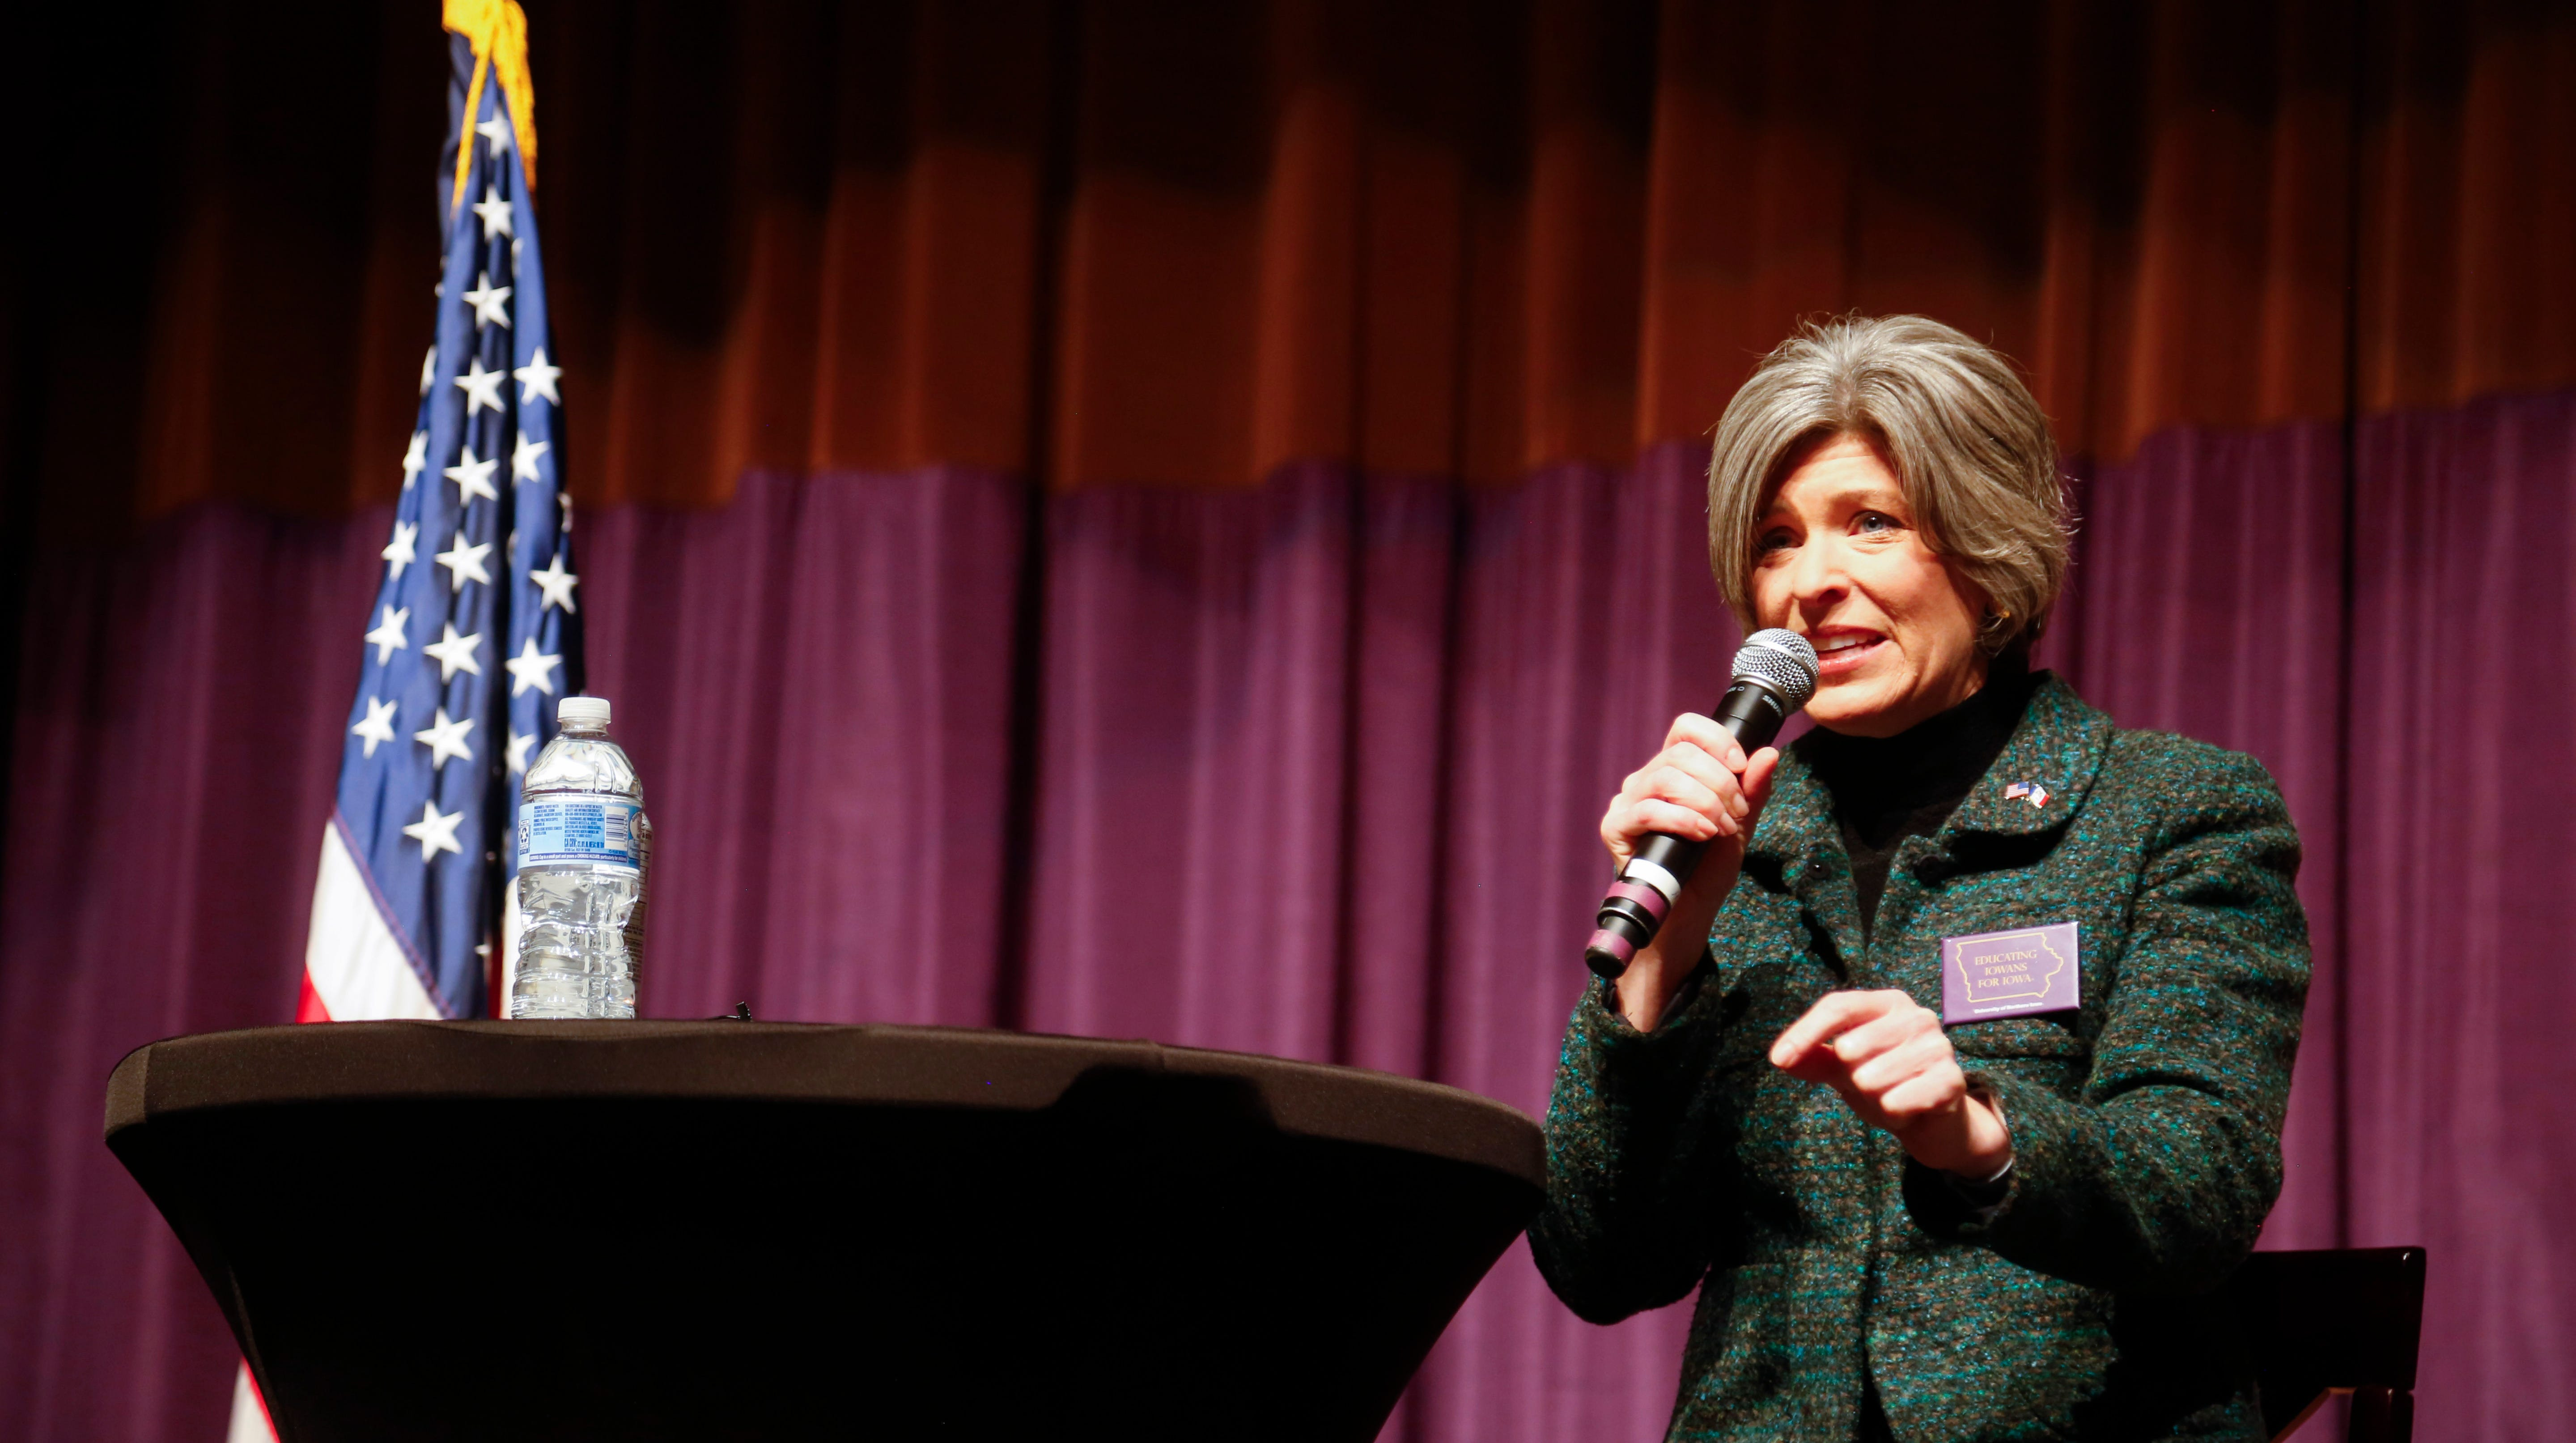 Sen. Joni Ernst, R-Iowa takes questions during a town hall at the University of Norther Iowa Wednesday, Jan. 23, 2019.